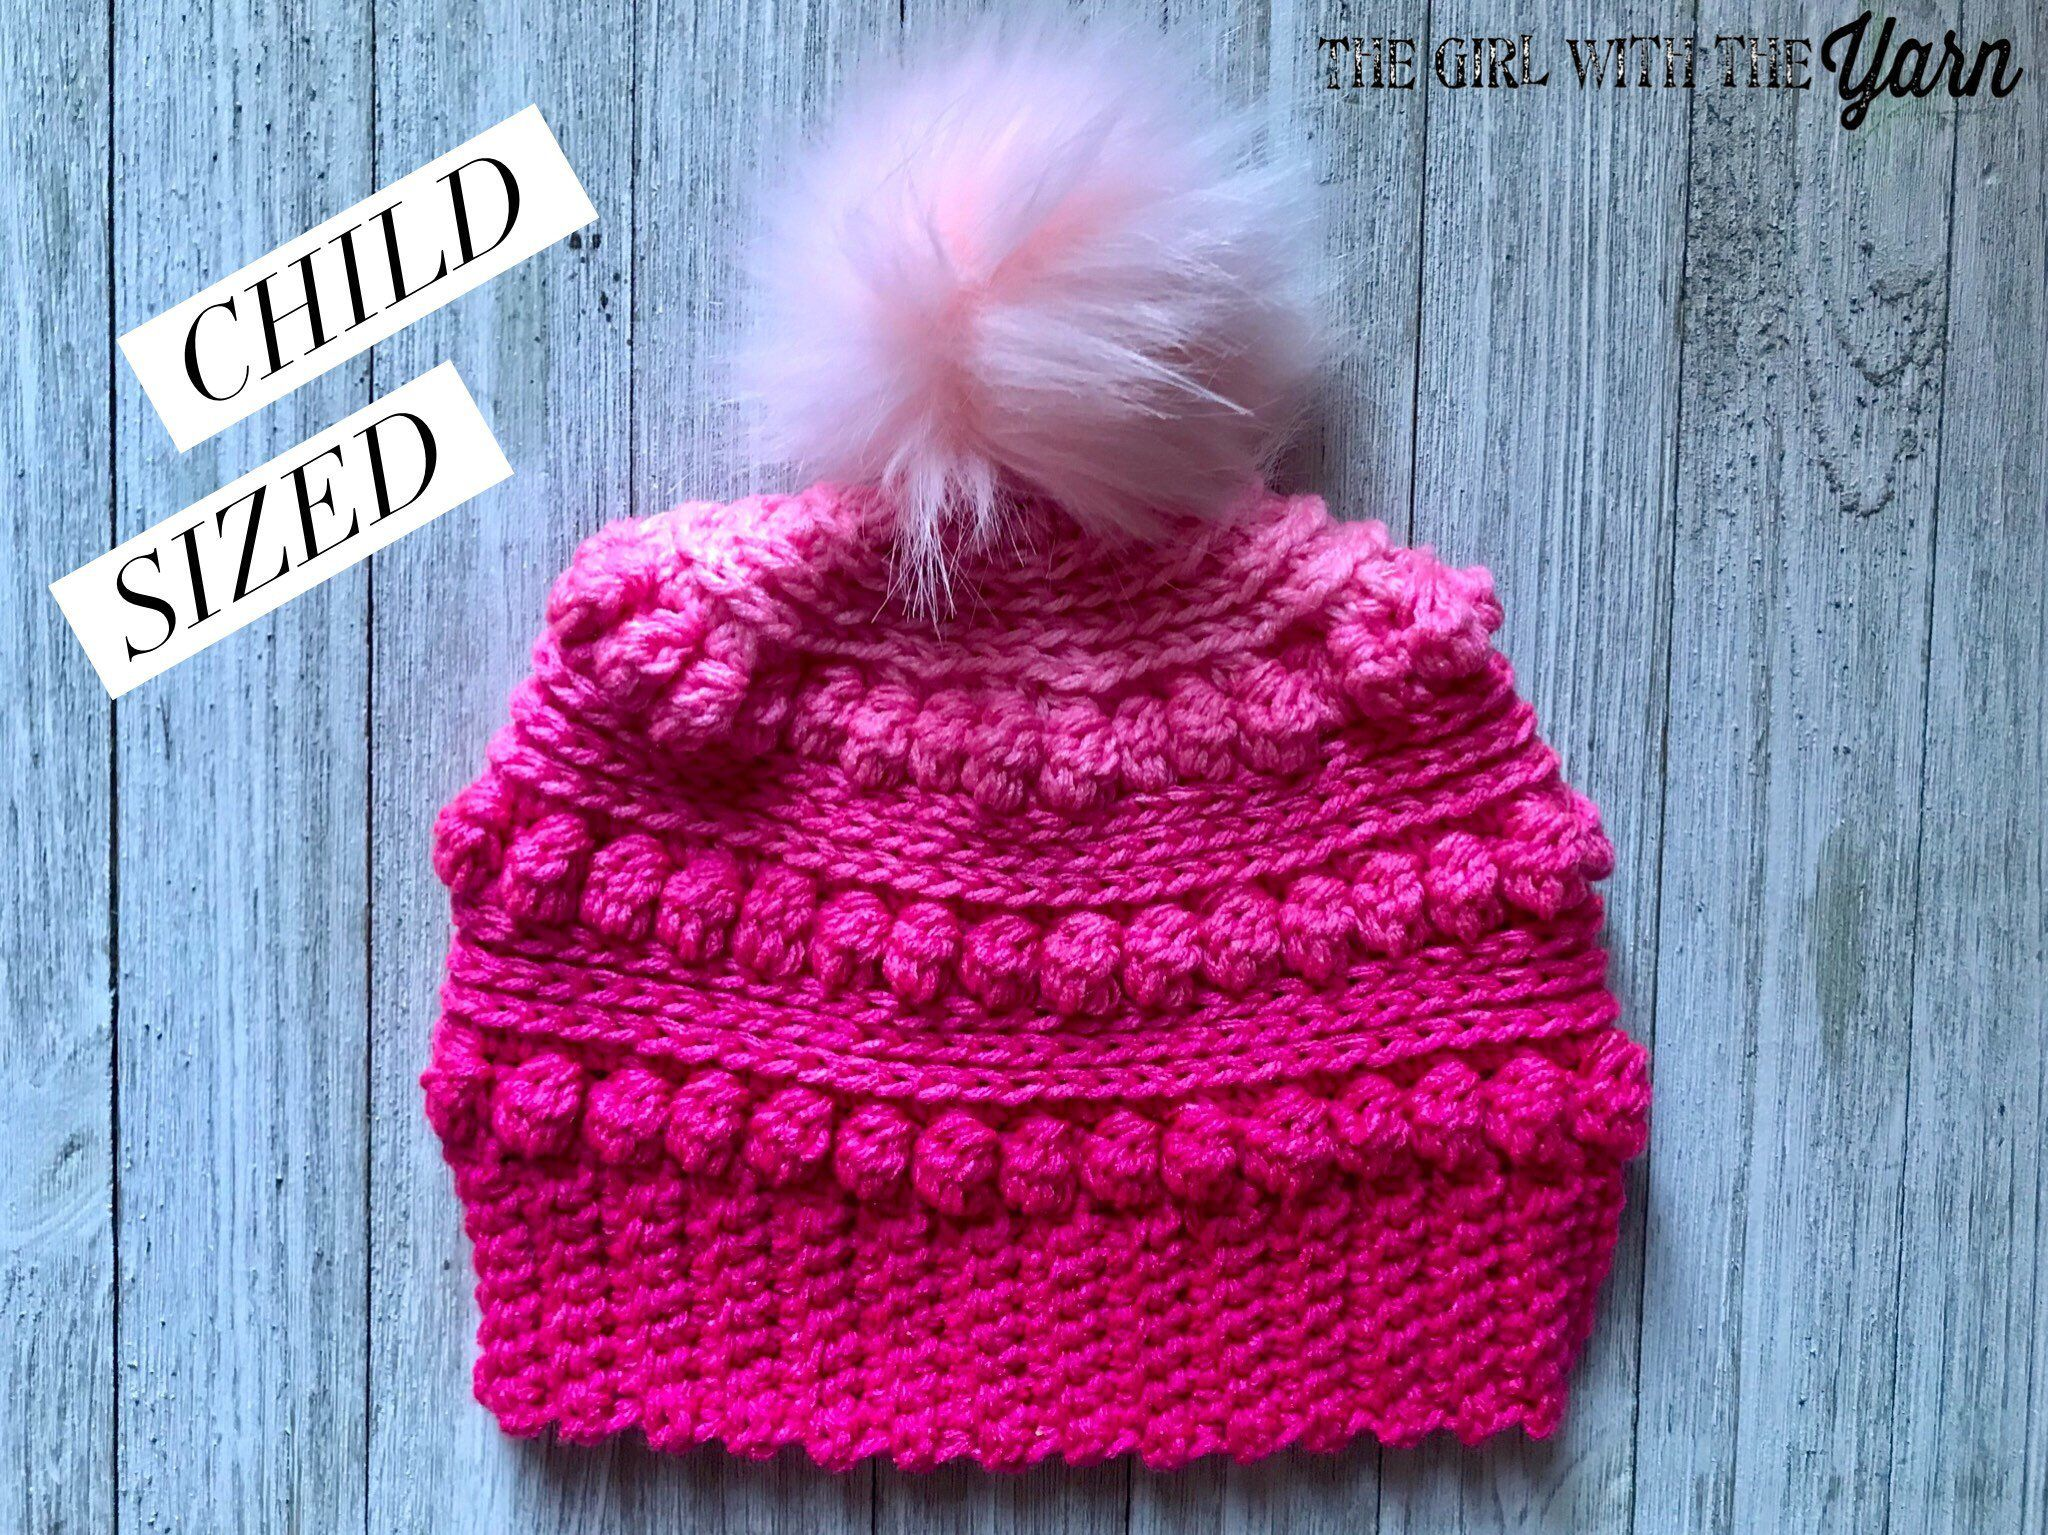 c2933e9afea Excited to share this item from my  etsy shop  Pink Ombré Bubblegum Pop Bobble  Hat with Faux Fur Pom Pom